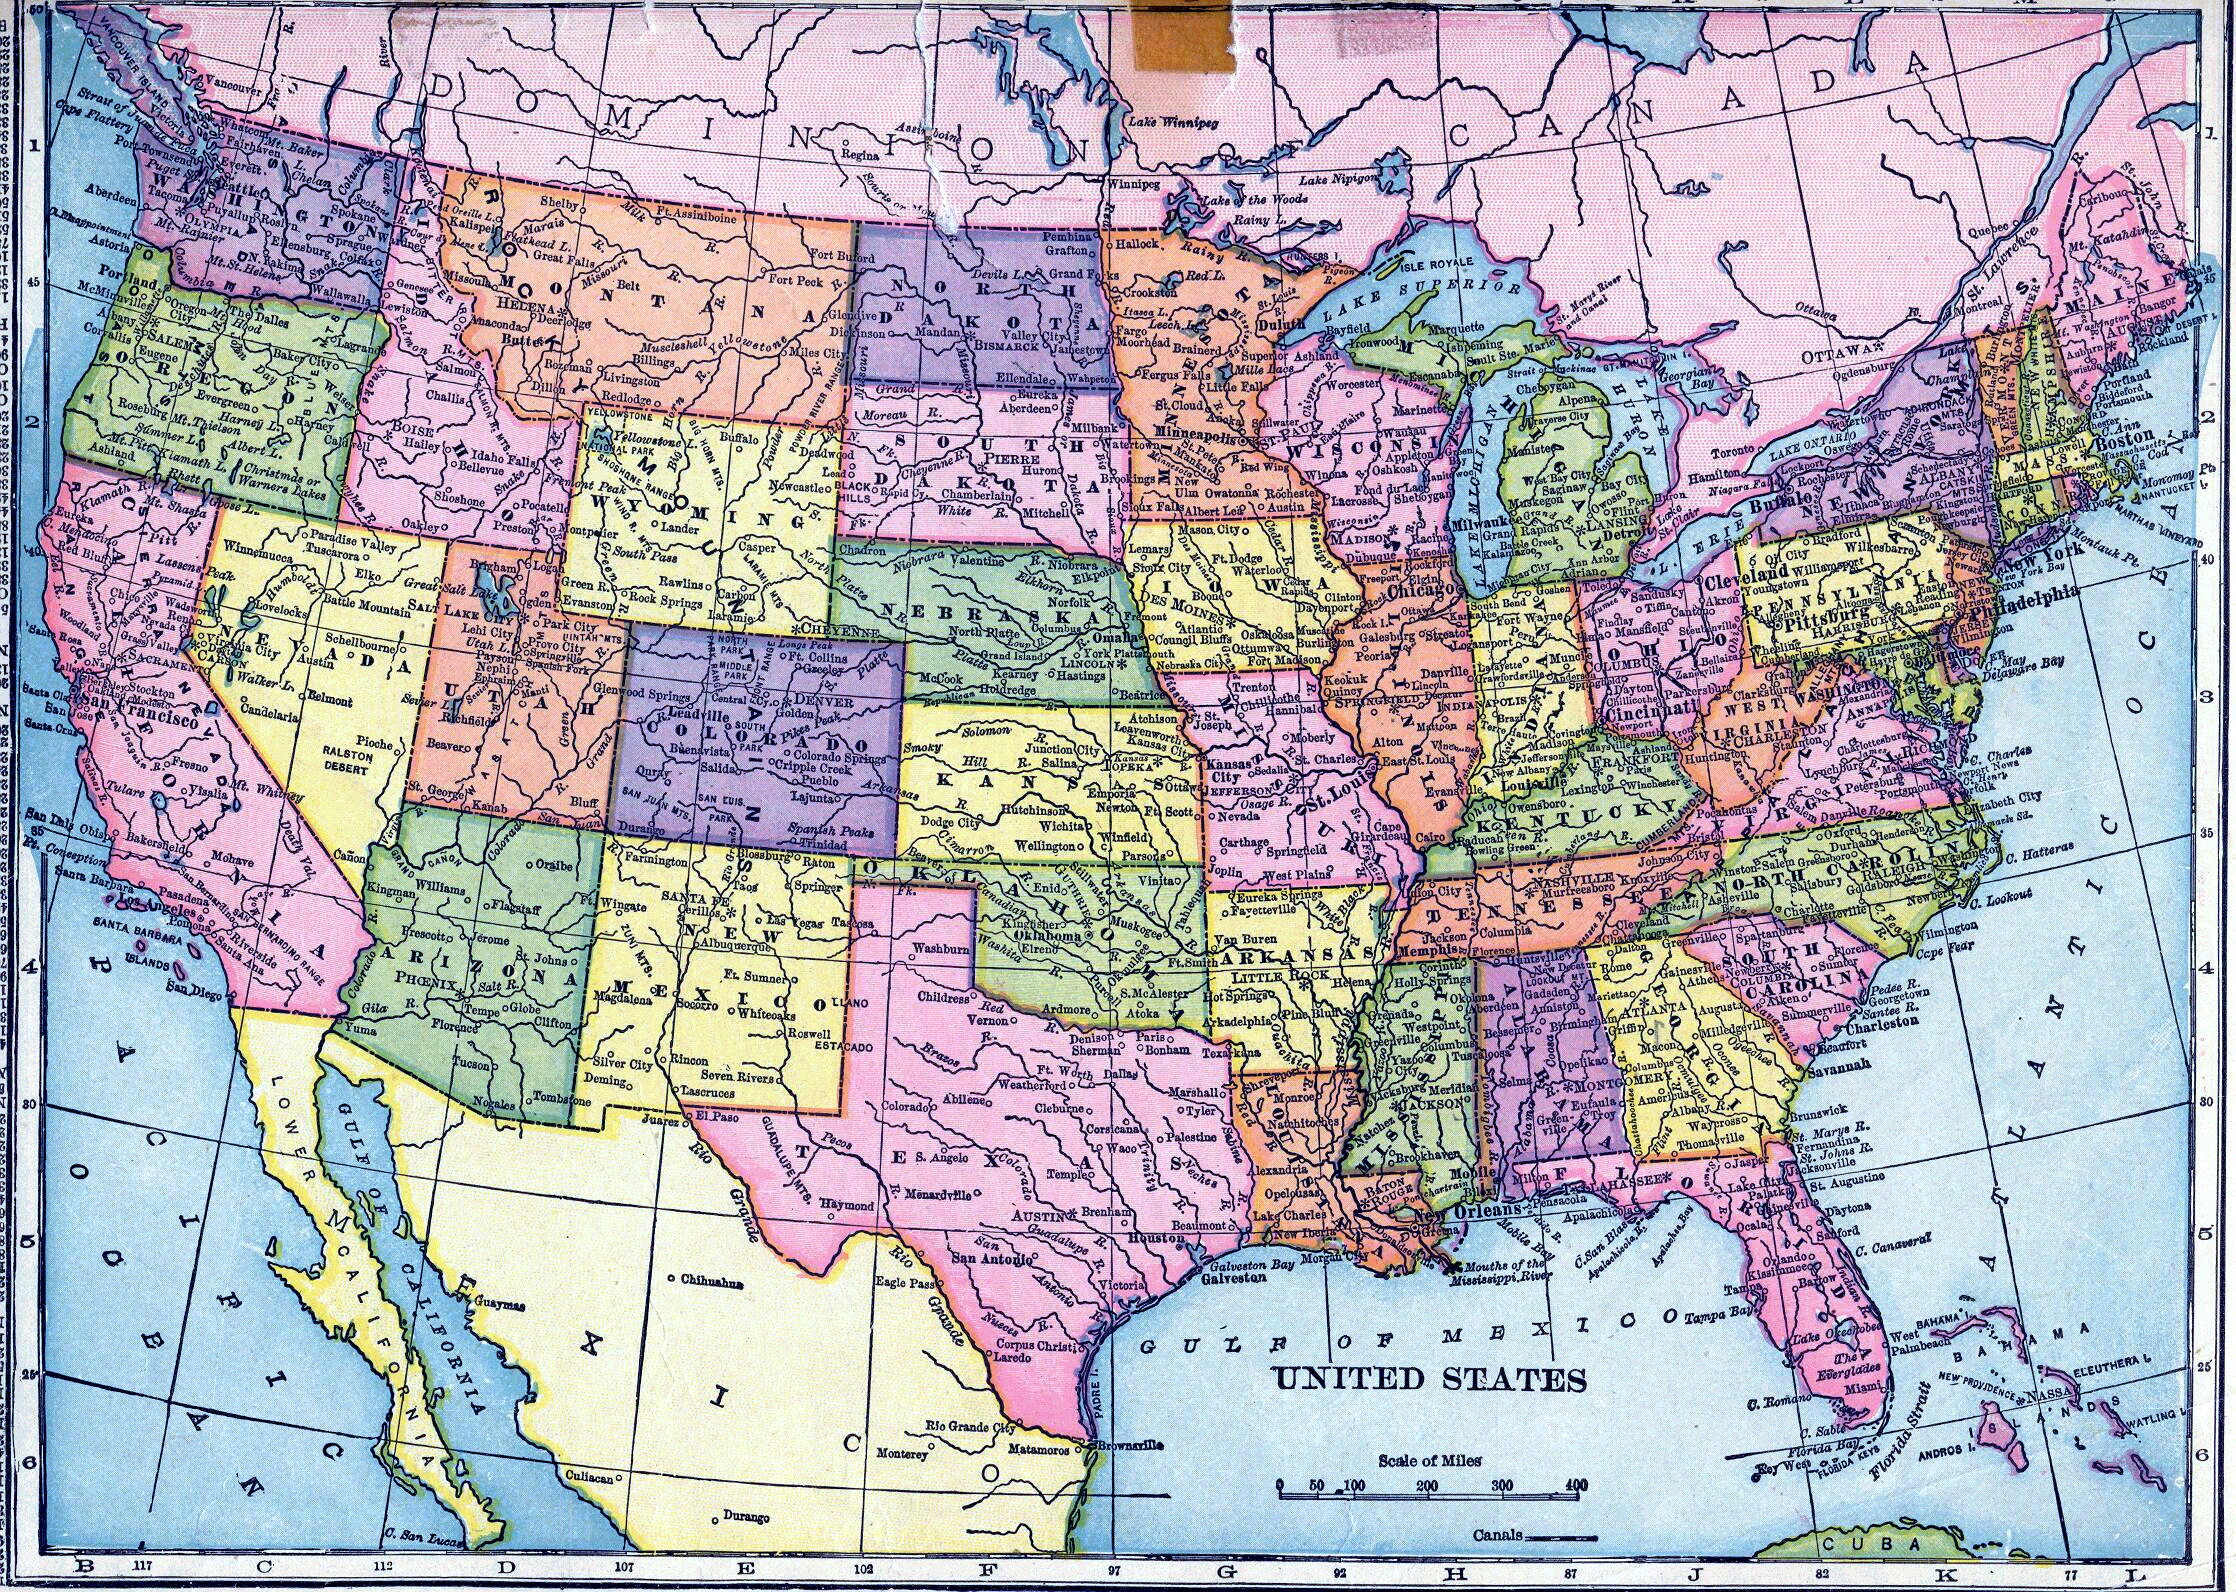 USA Map Southwest USA Topo Map Nevada Mappery United States - Physical map of western us